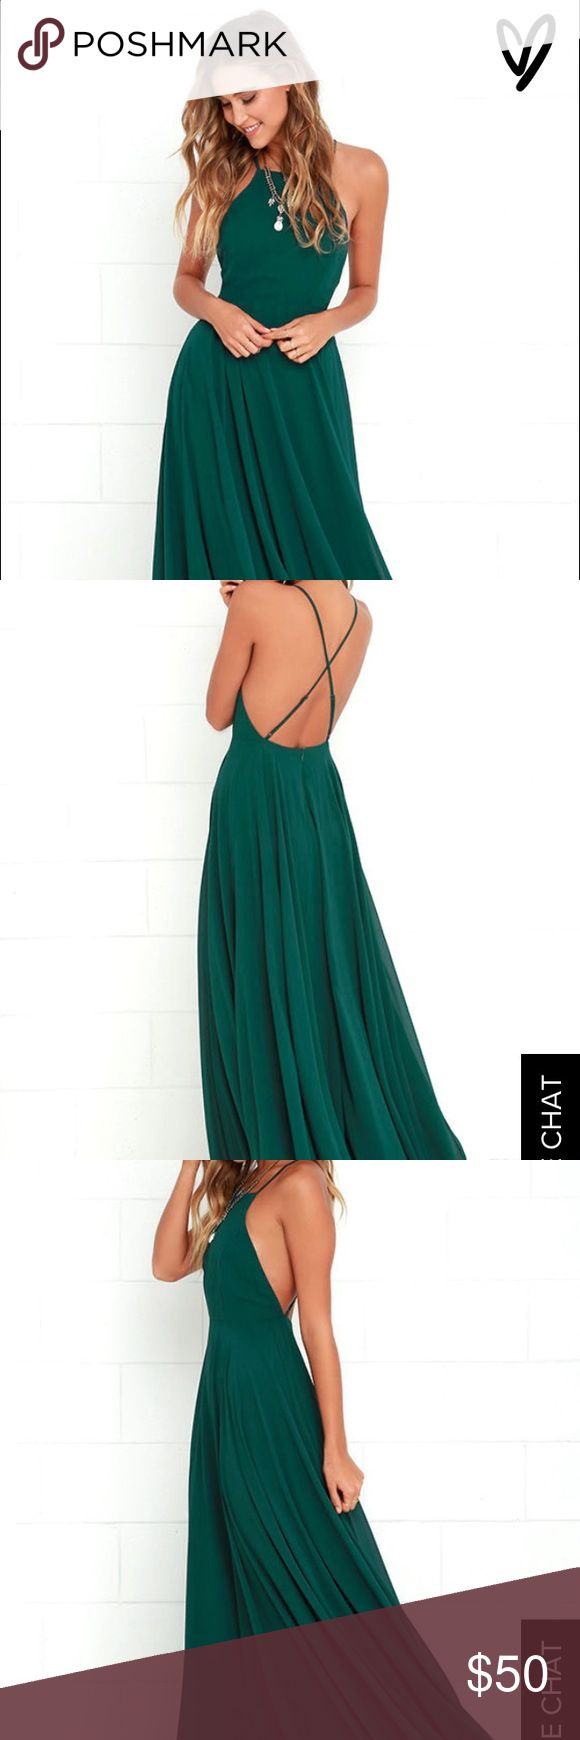 Never been worn Lulus dark green maxi dress Never been worn. Perfect condition green maxi dress perfect to dress up for formal wear or dress down for more causal wear Lulu's Dresses Maxi